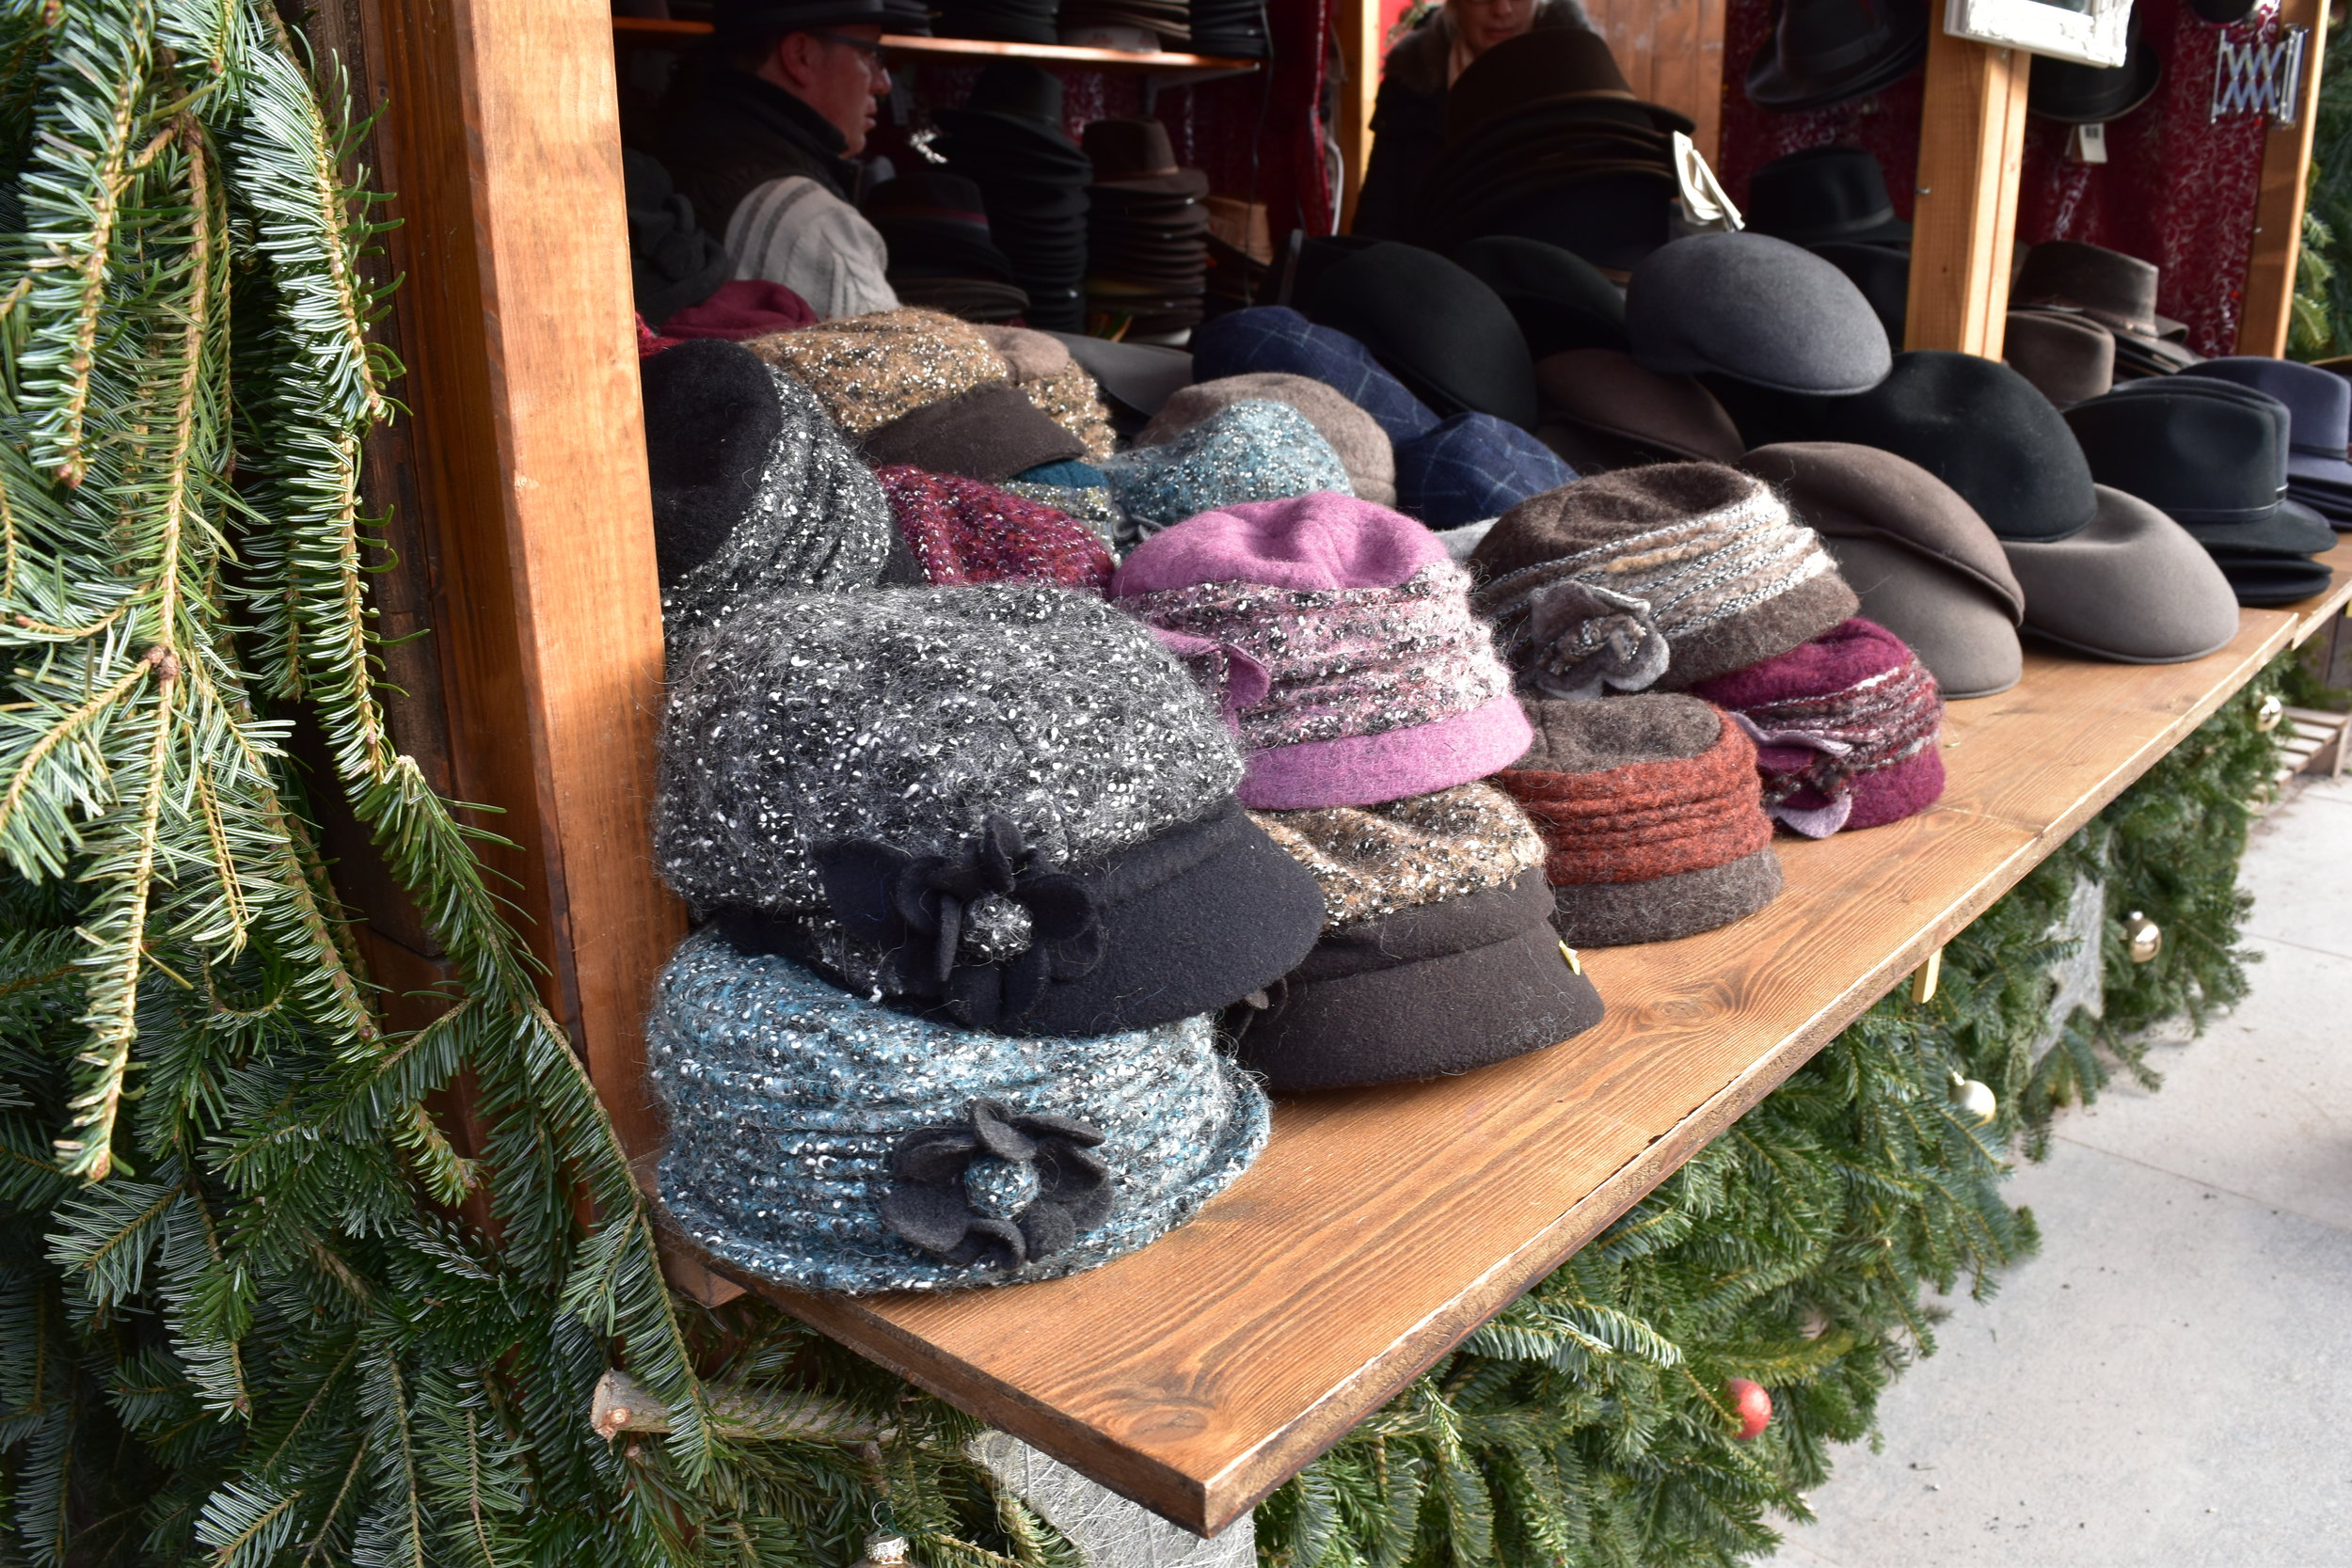 These hats that were sold at the Christmas Market in Baden Baden, Germany make the perfect holiday gift.